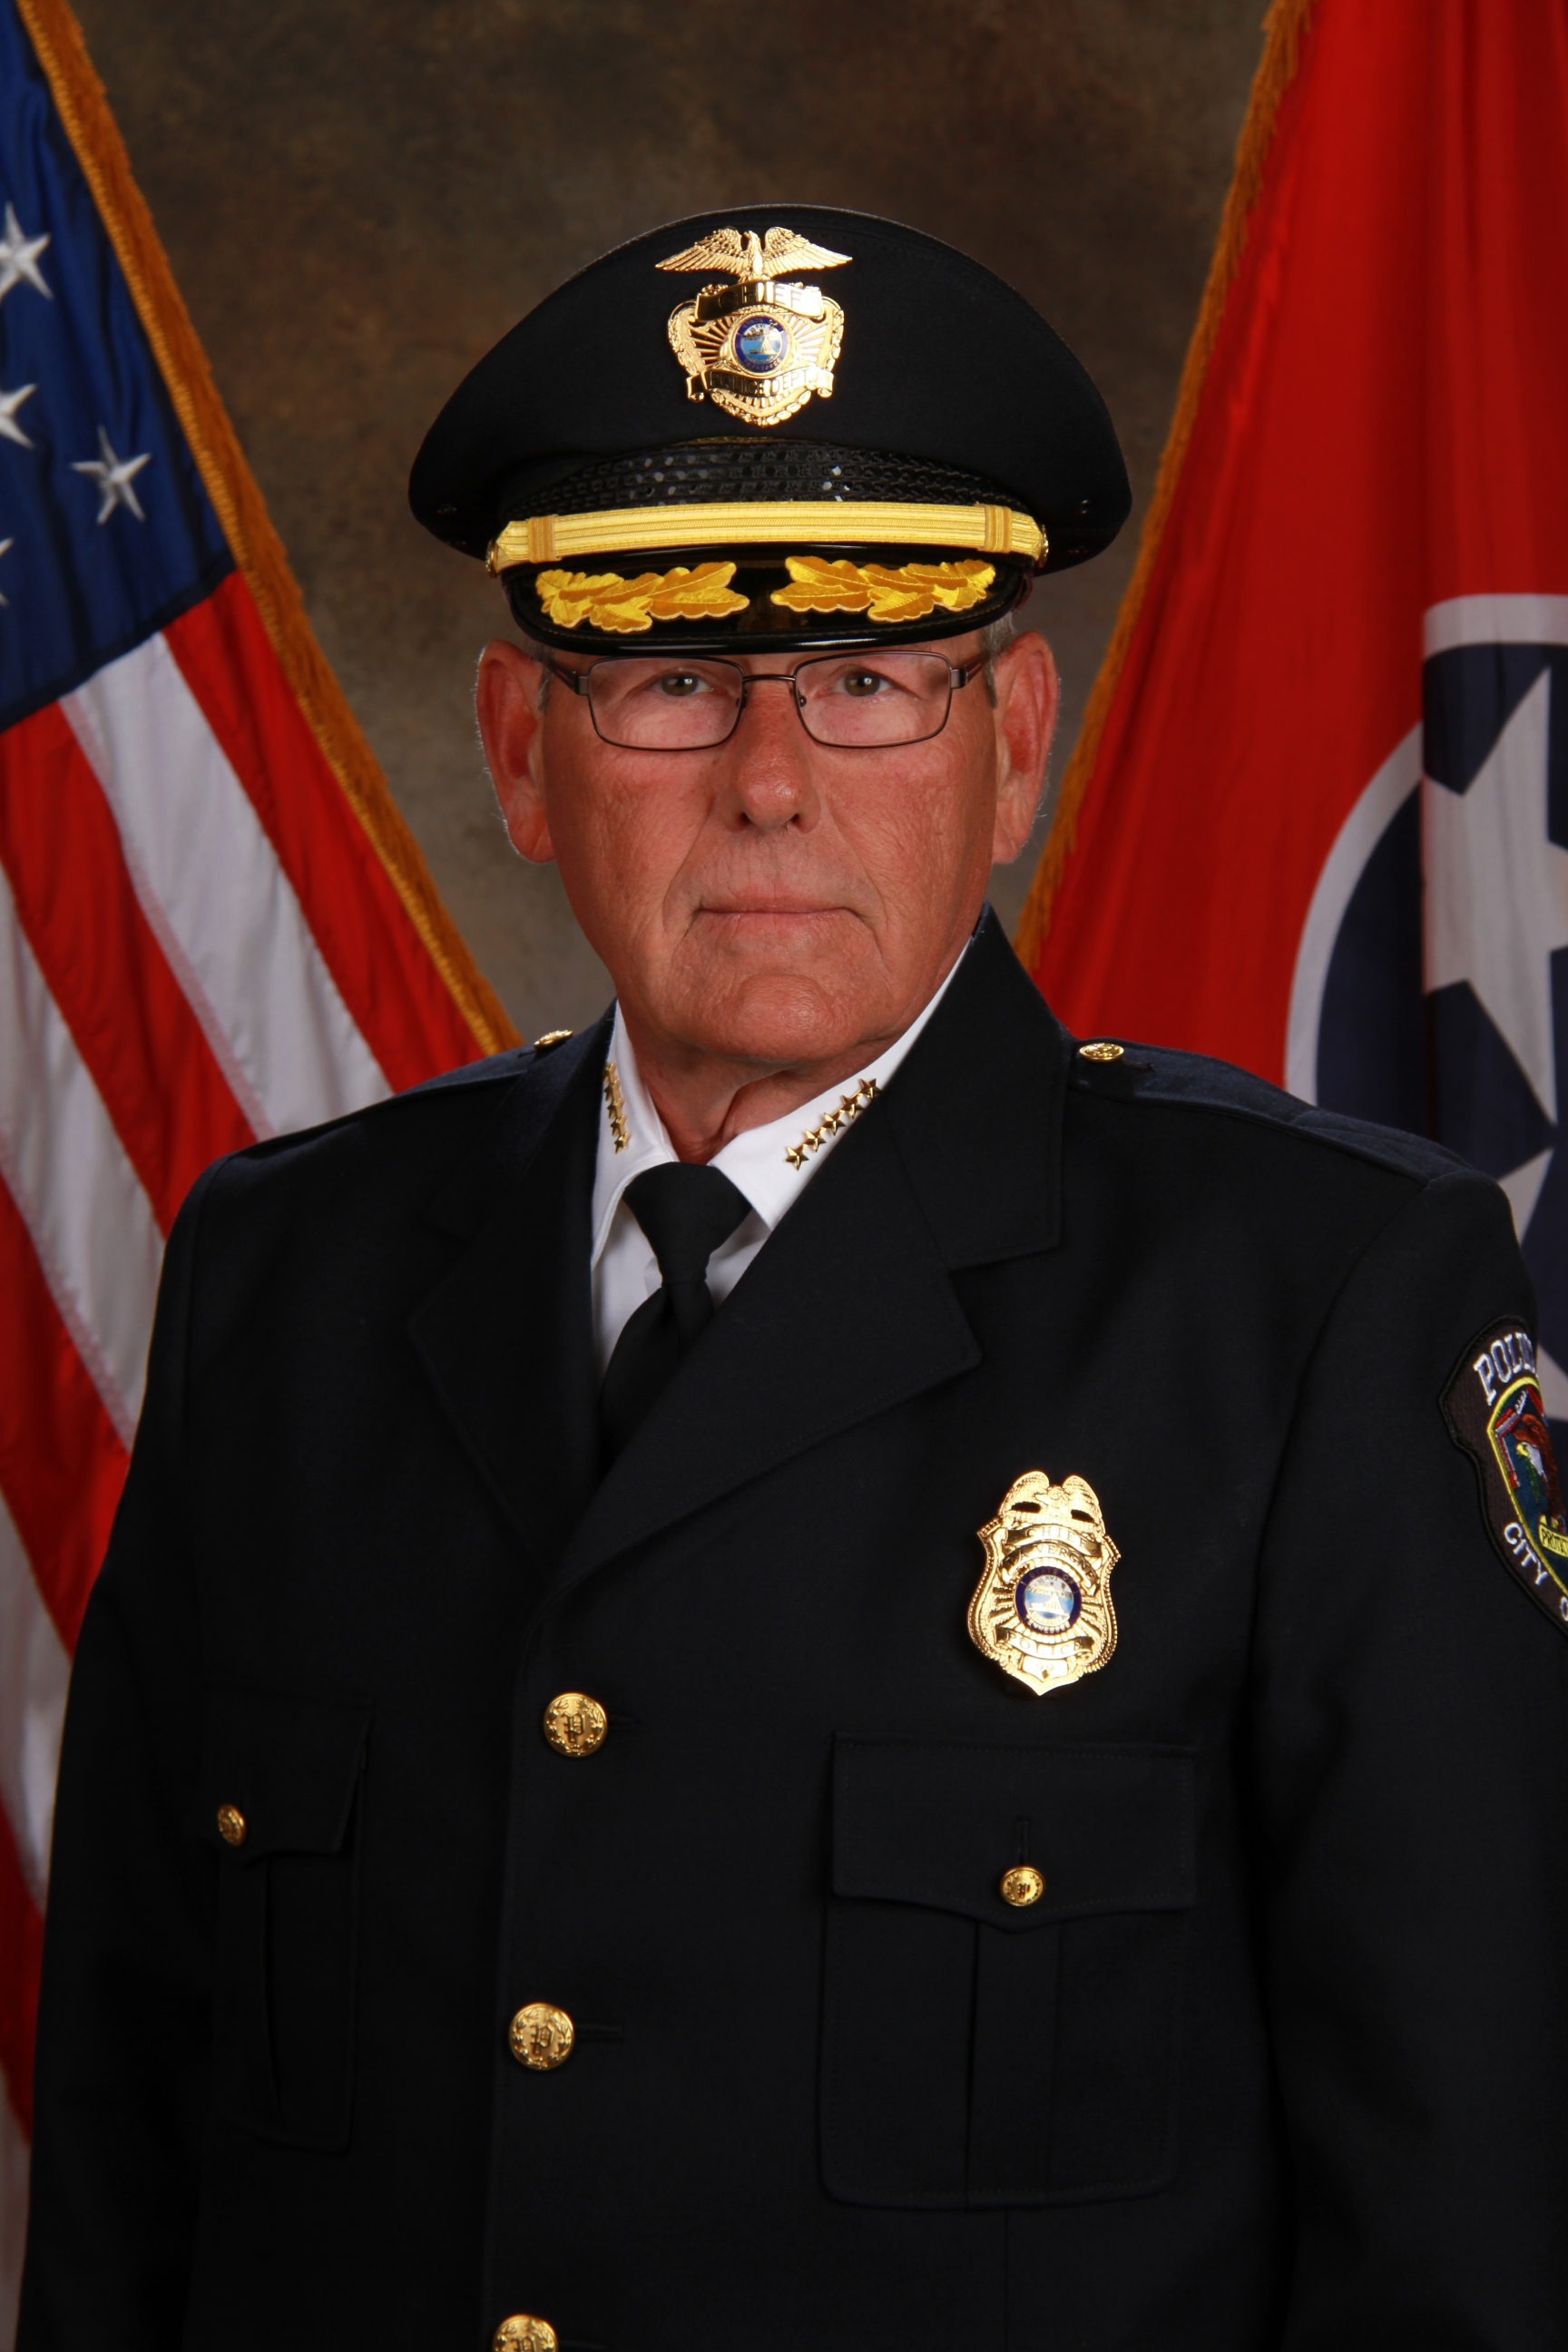 image of Police Chief Mike Walker